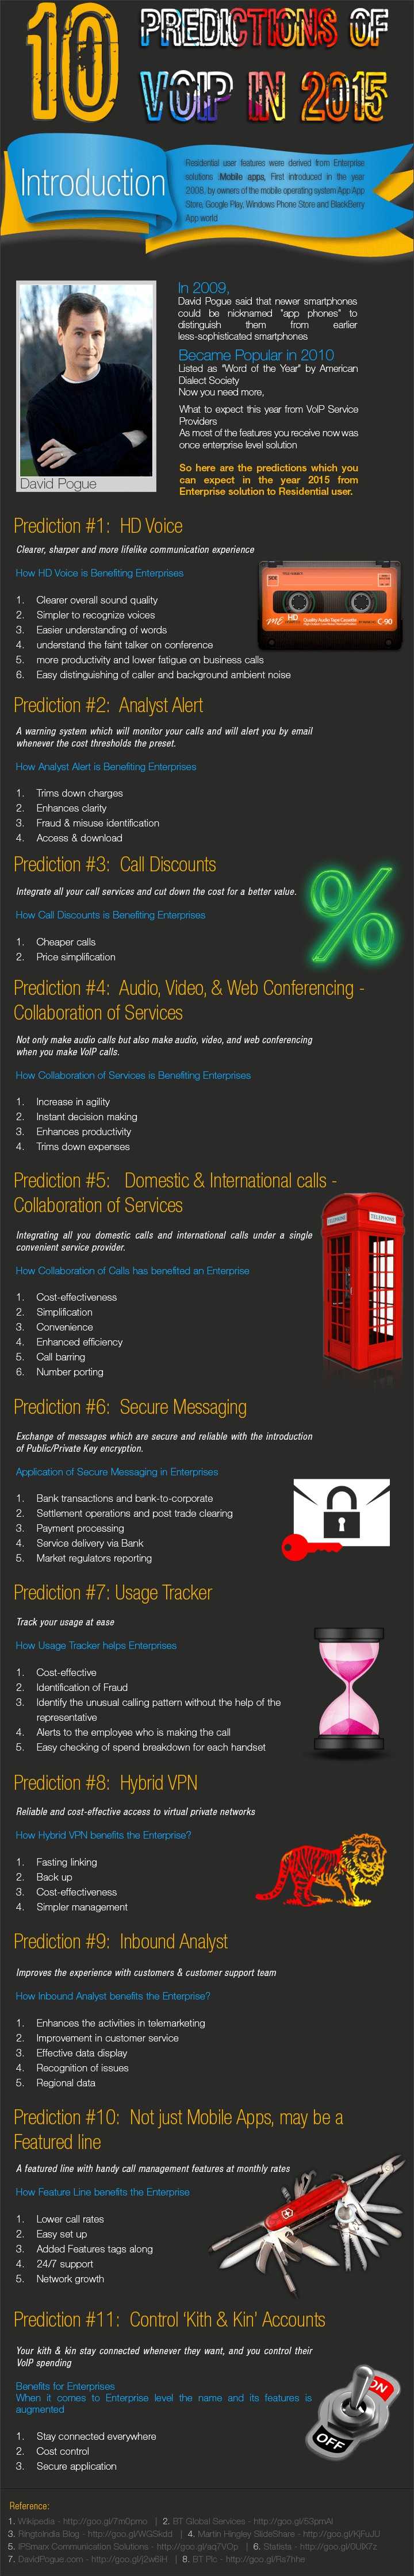 10-Predictions-of-VoIP-in-2015-infographic